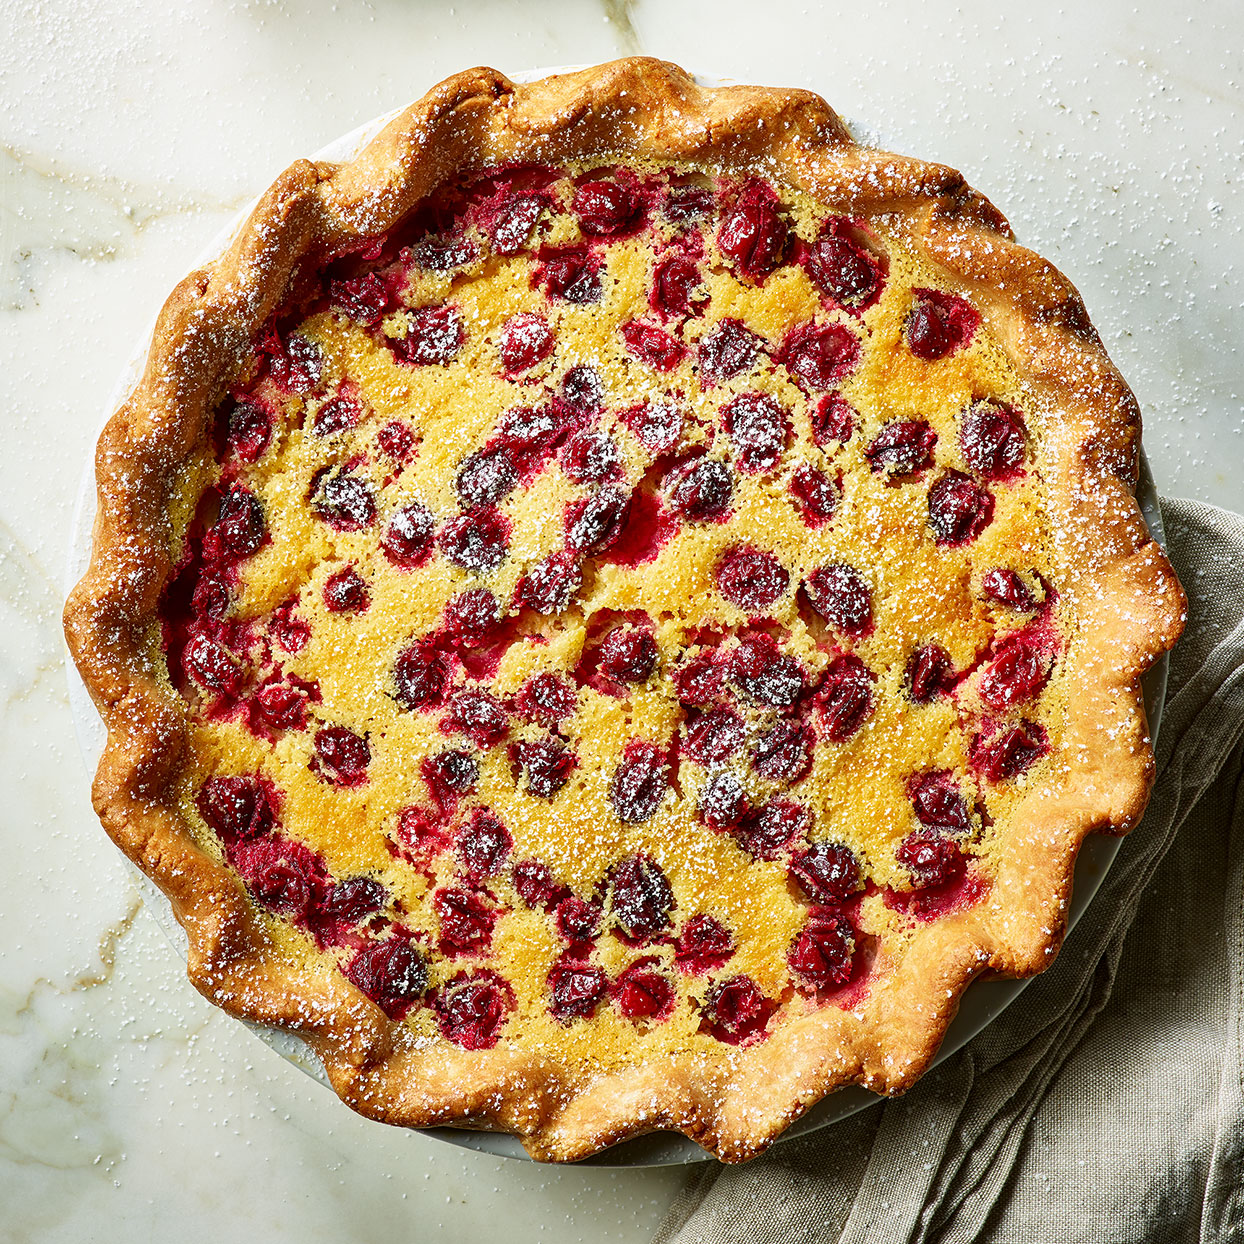 This custard filling is what takes this buttermilk pie recipe to the next level. It tastes like a panna cotta with a bit of attitude from the tang of the buttermilk and a generous sprinkling of cranberries on top. Source: EatingWell Magazine, November 2019